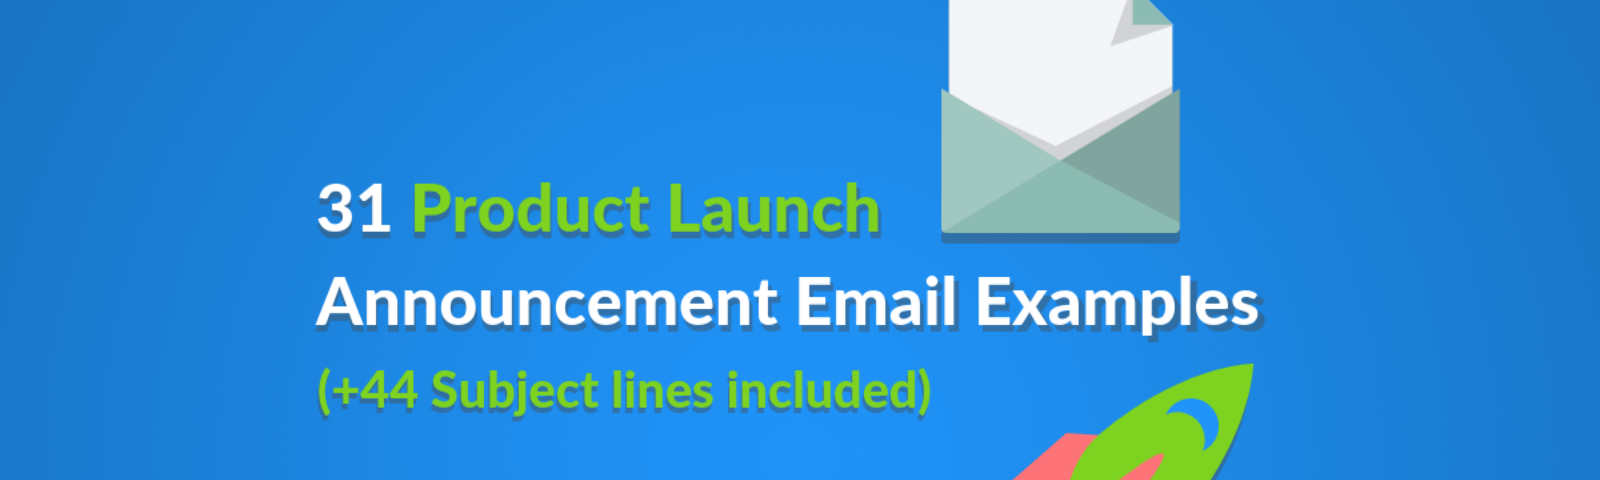 31 Product Launch Announcement Email Examples (+21 Subject lines)